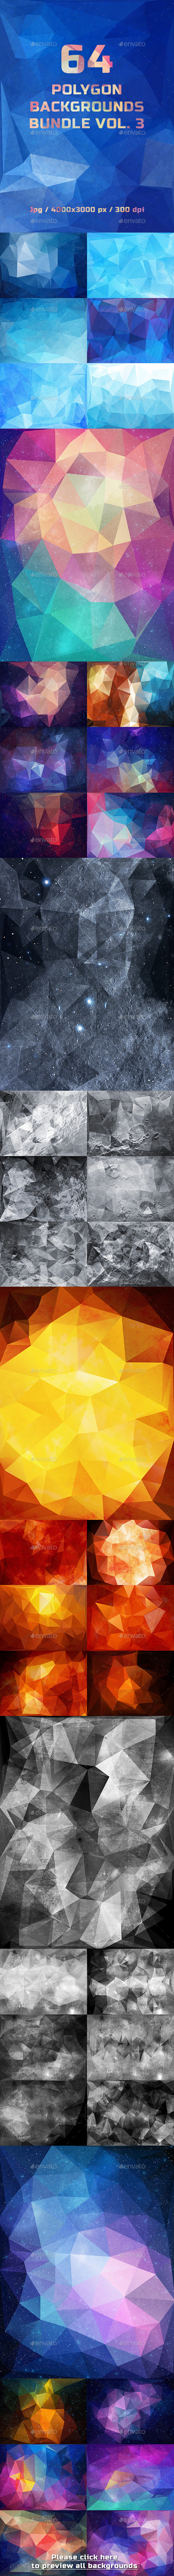 GraphicRiver 64 Polygon Backgrounds Bundle Vol.3 11434127